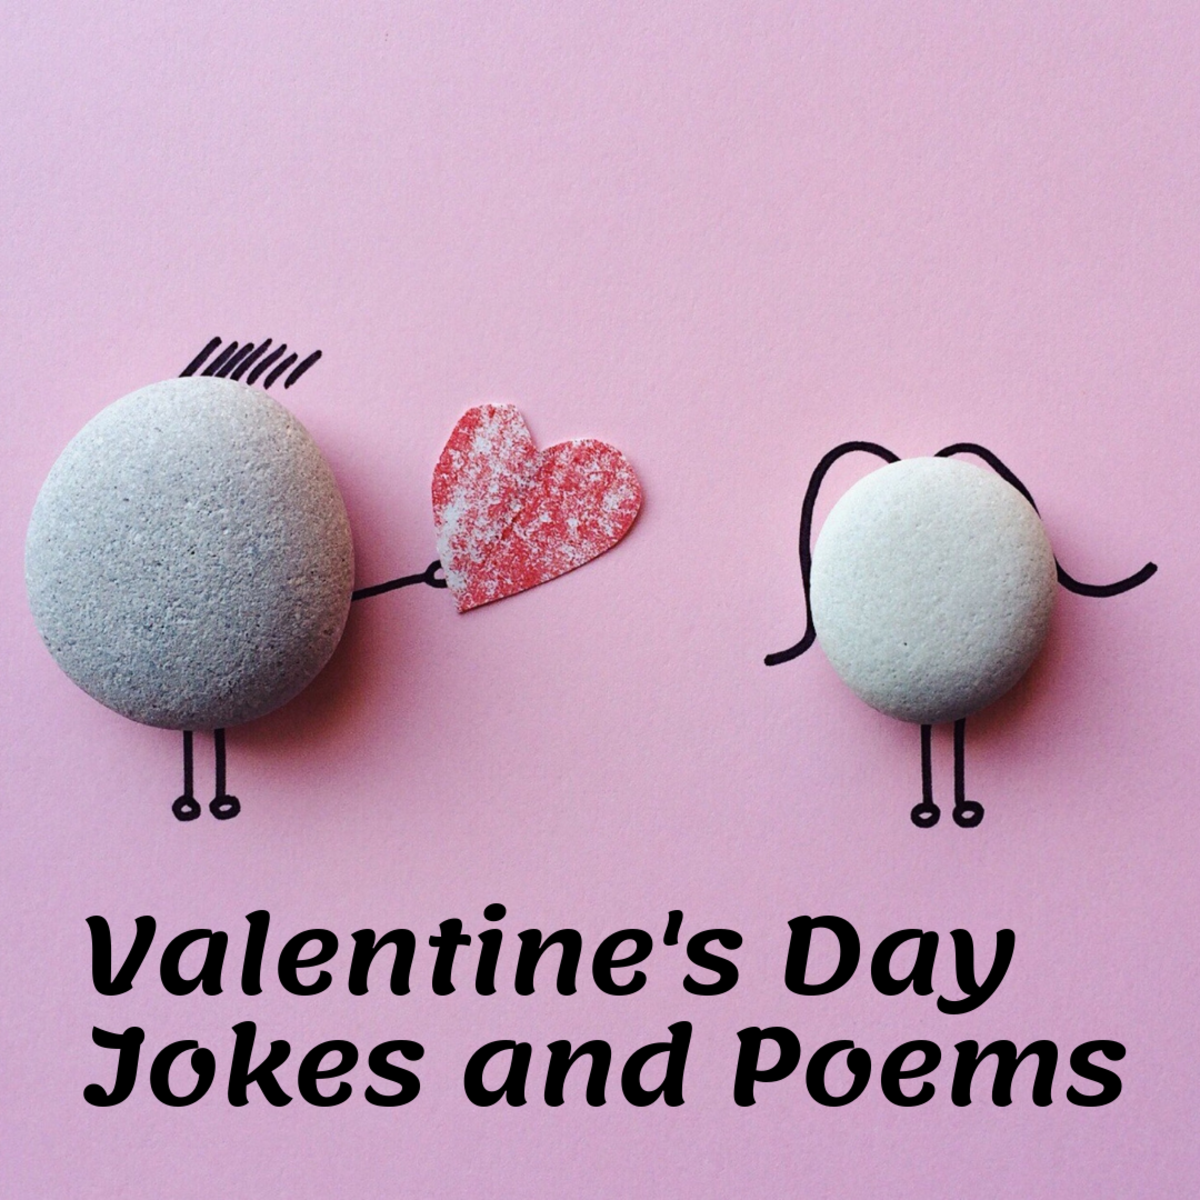 These Valentine's Day jokes and poems are sure to put you in a good mood.